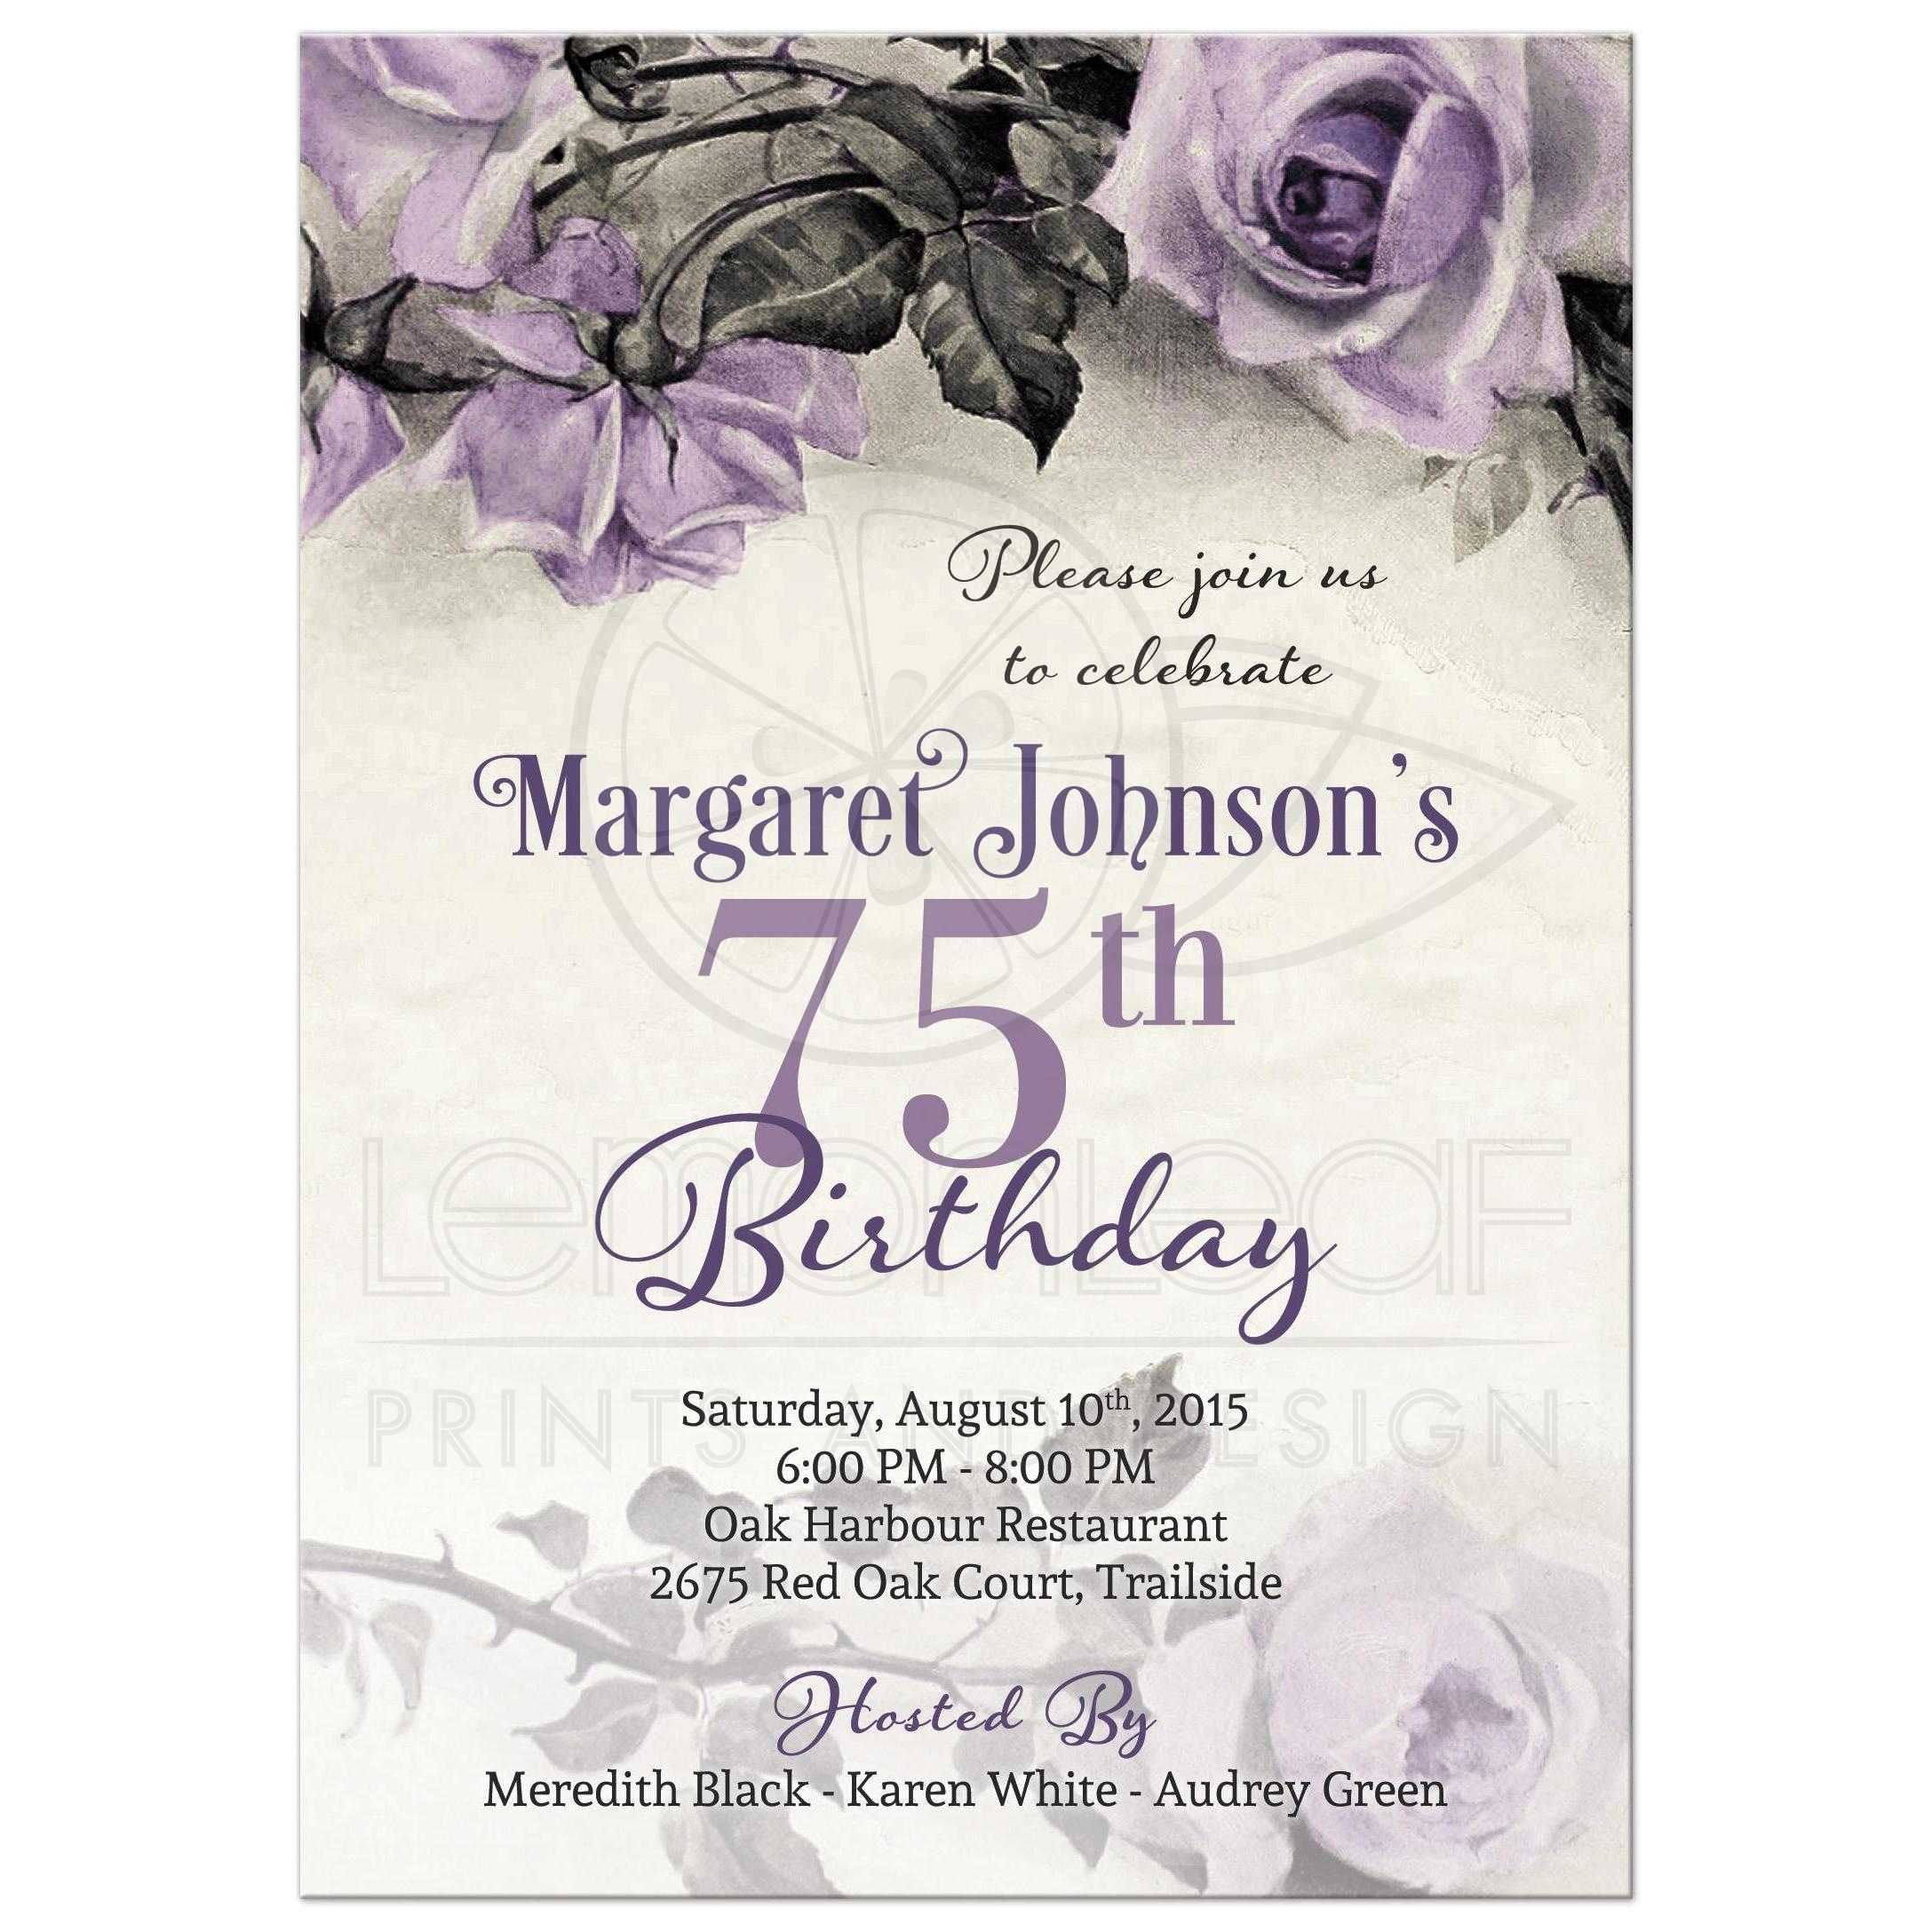 75th Birthday Invitations Wording Rectangle And Navy Theme